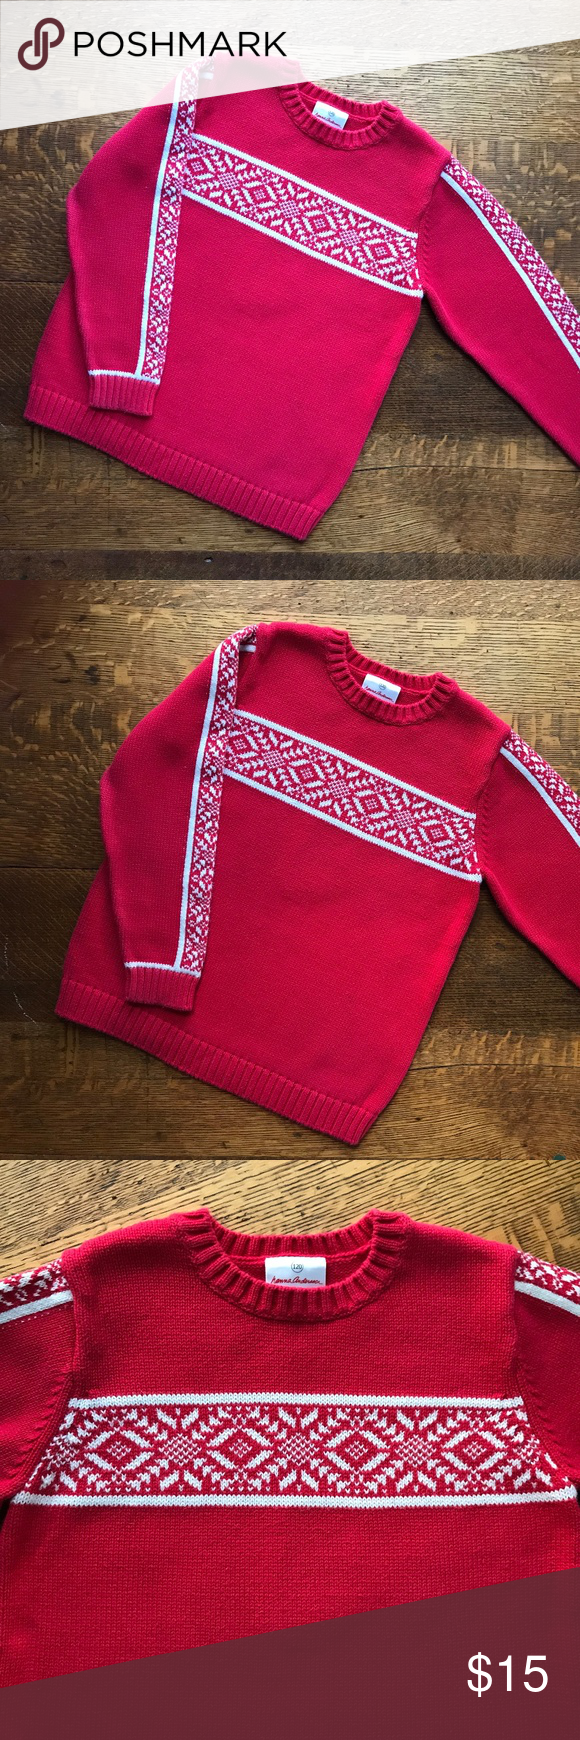 Hanna Andersson Christmas Sweater Winter Nordic In 2018 My Posh